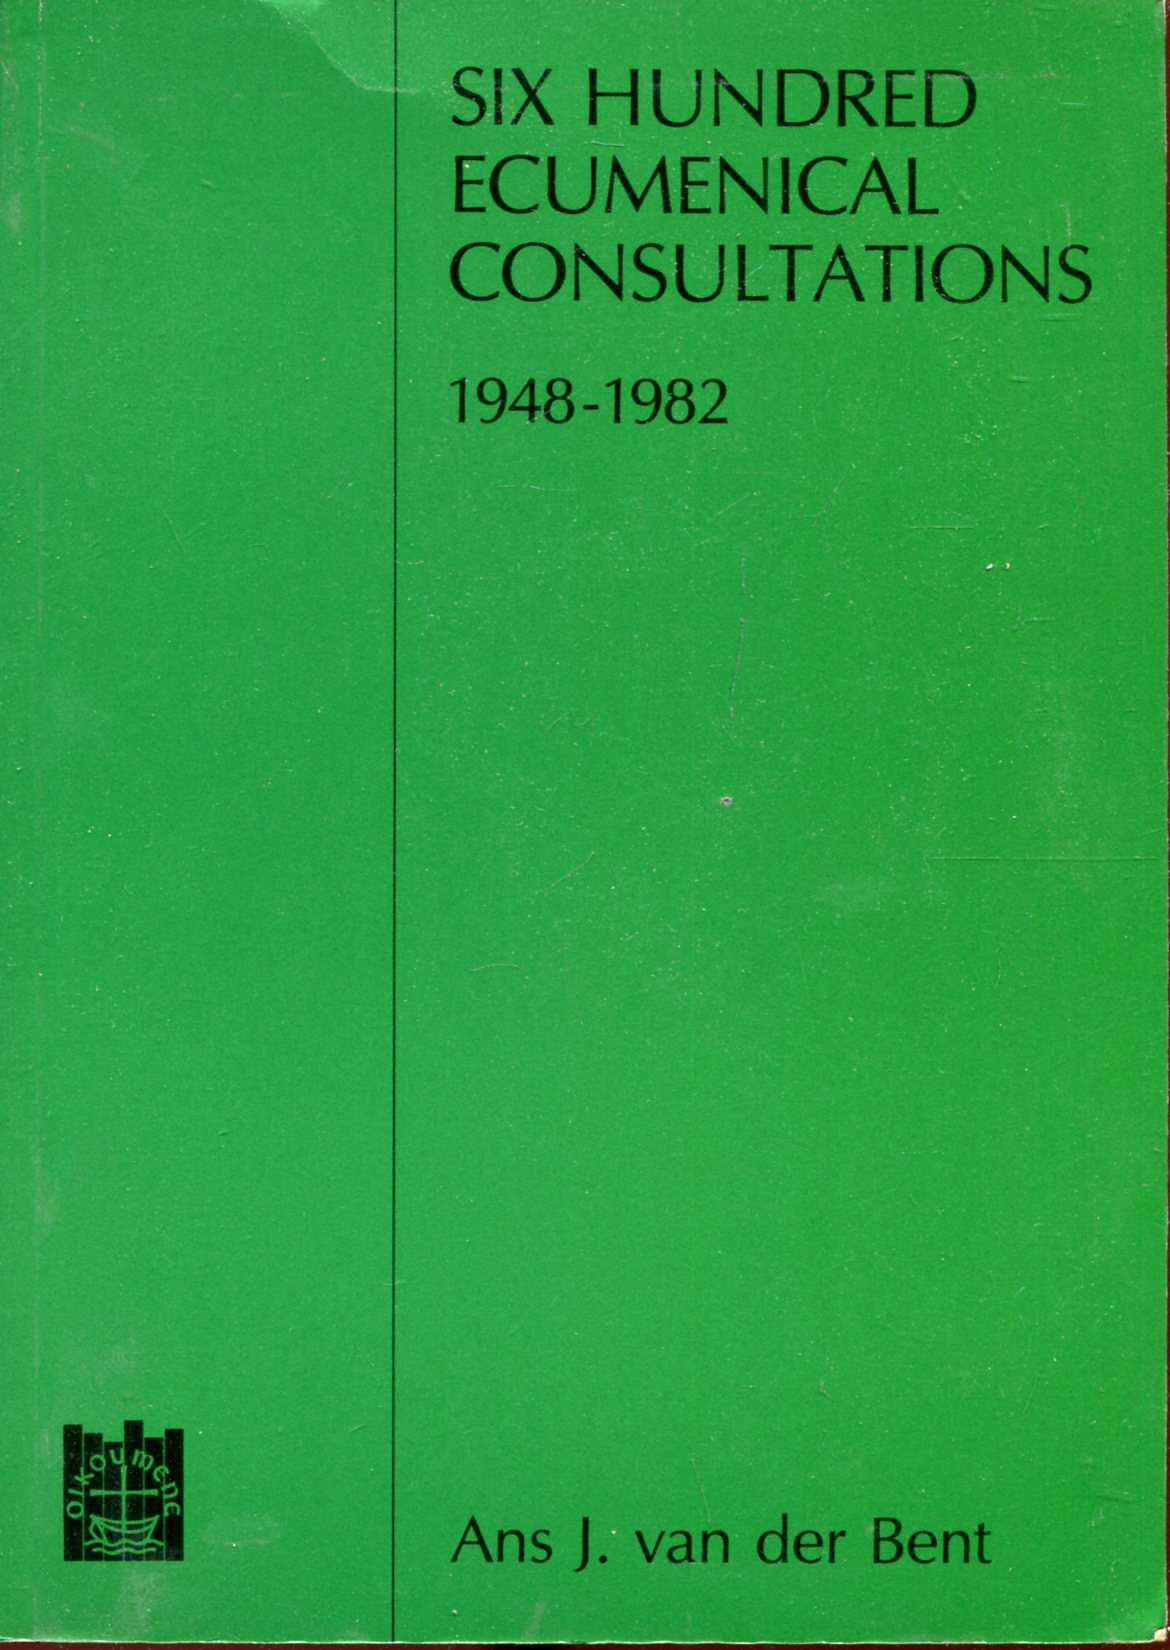 Image for Six Hundred Ecumenical Consultations, 1948-1982